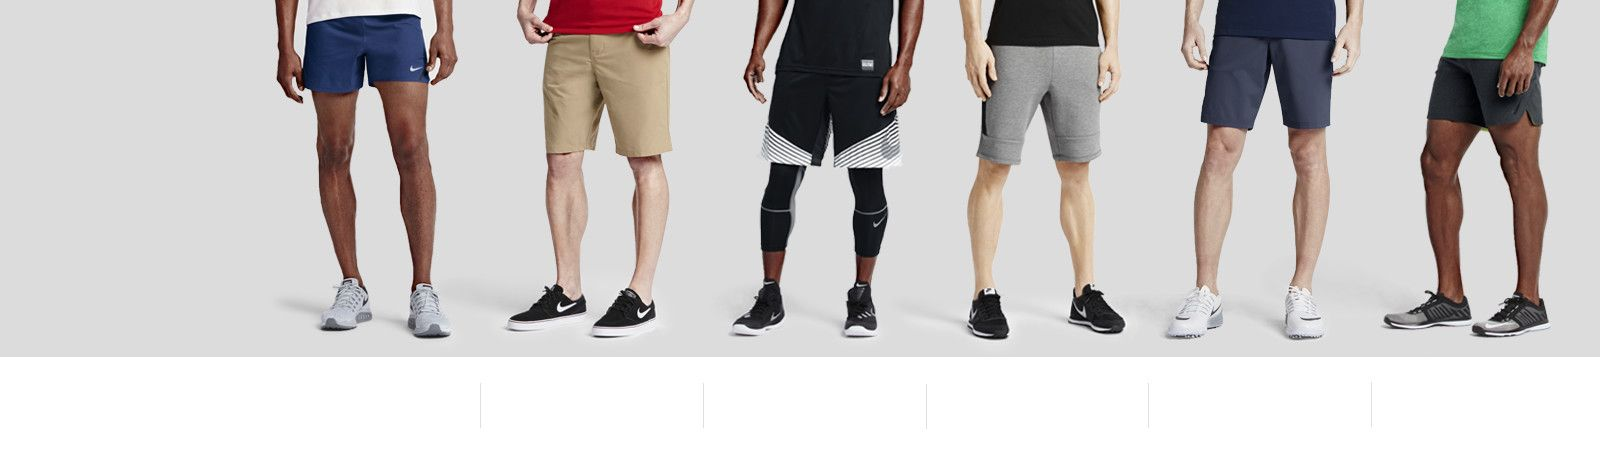 What Nike Shoes Go Best With Cotton Shorts